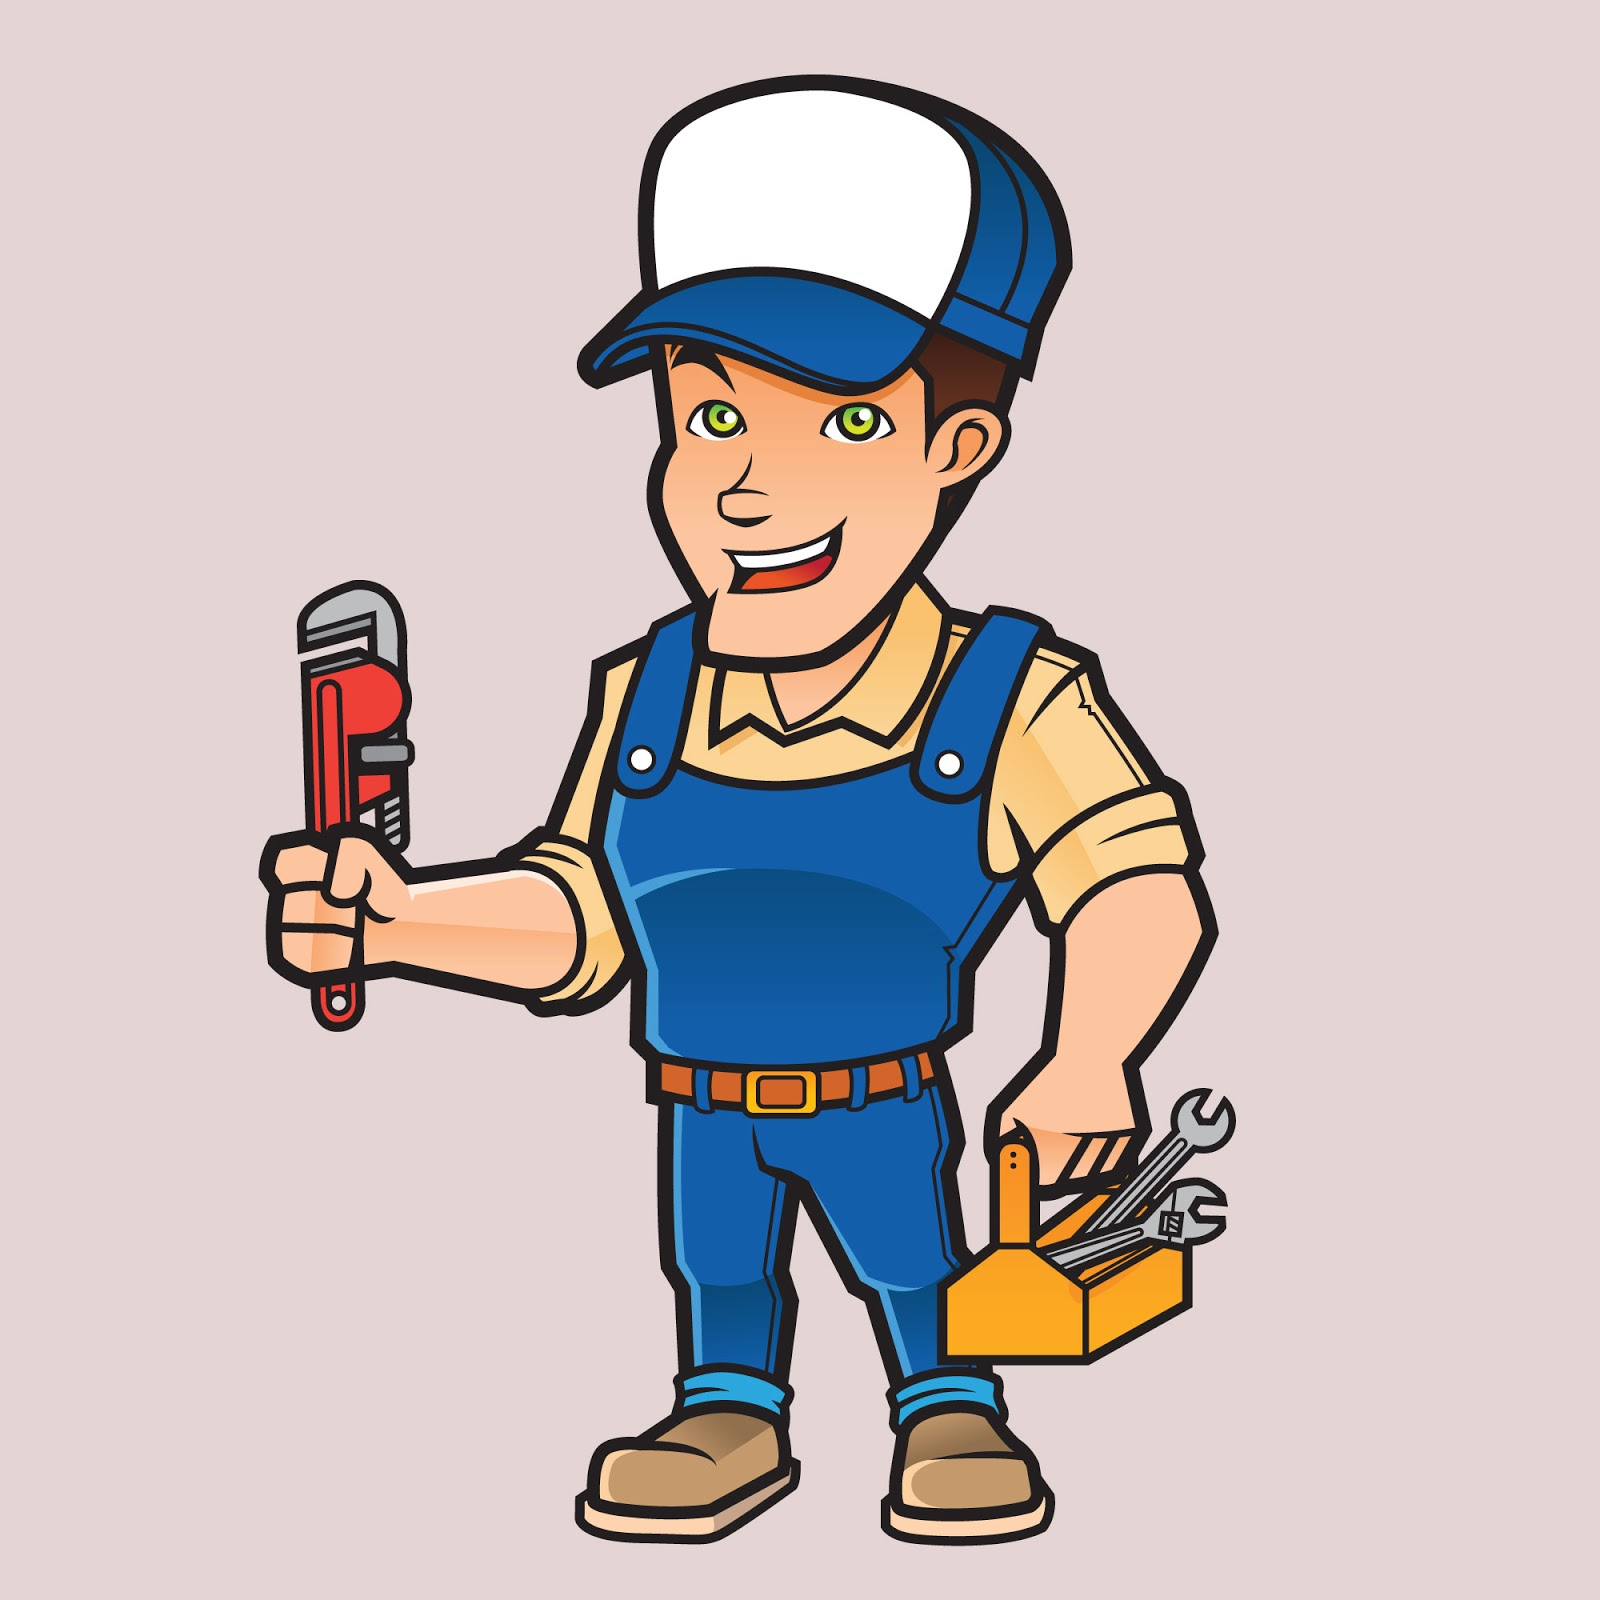 Plumber Mascot Logo Free Download Vector CDR, AI, EPS and PNG Formats